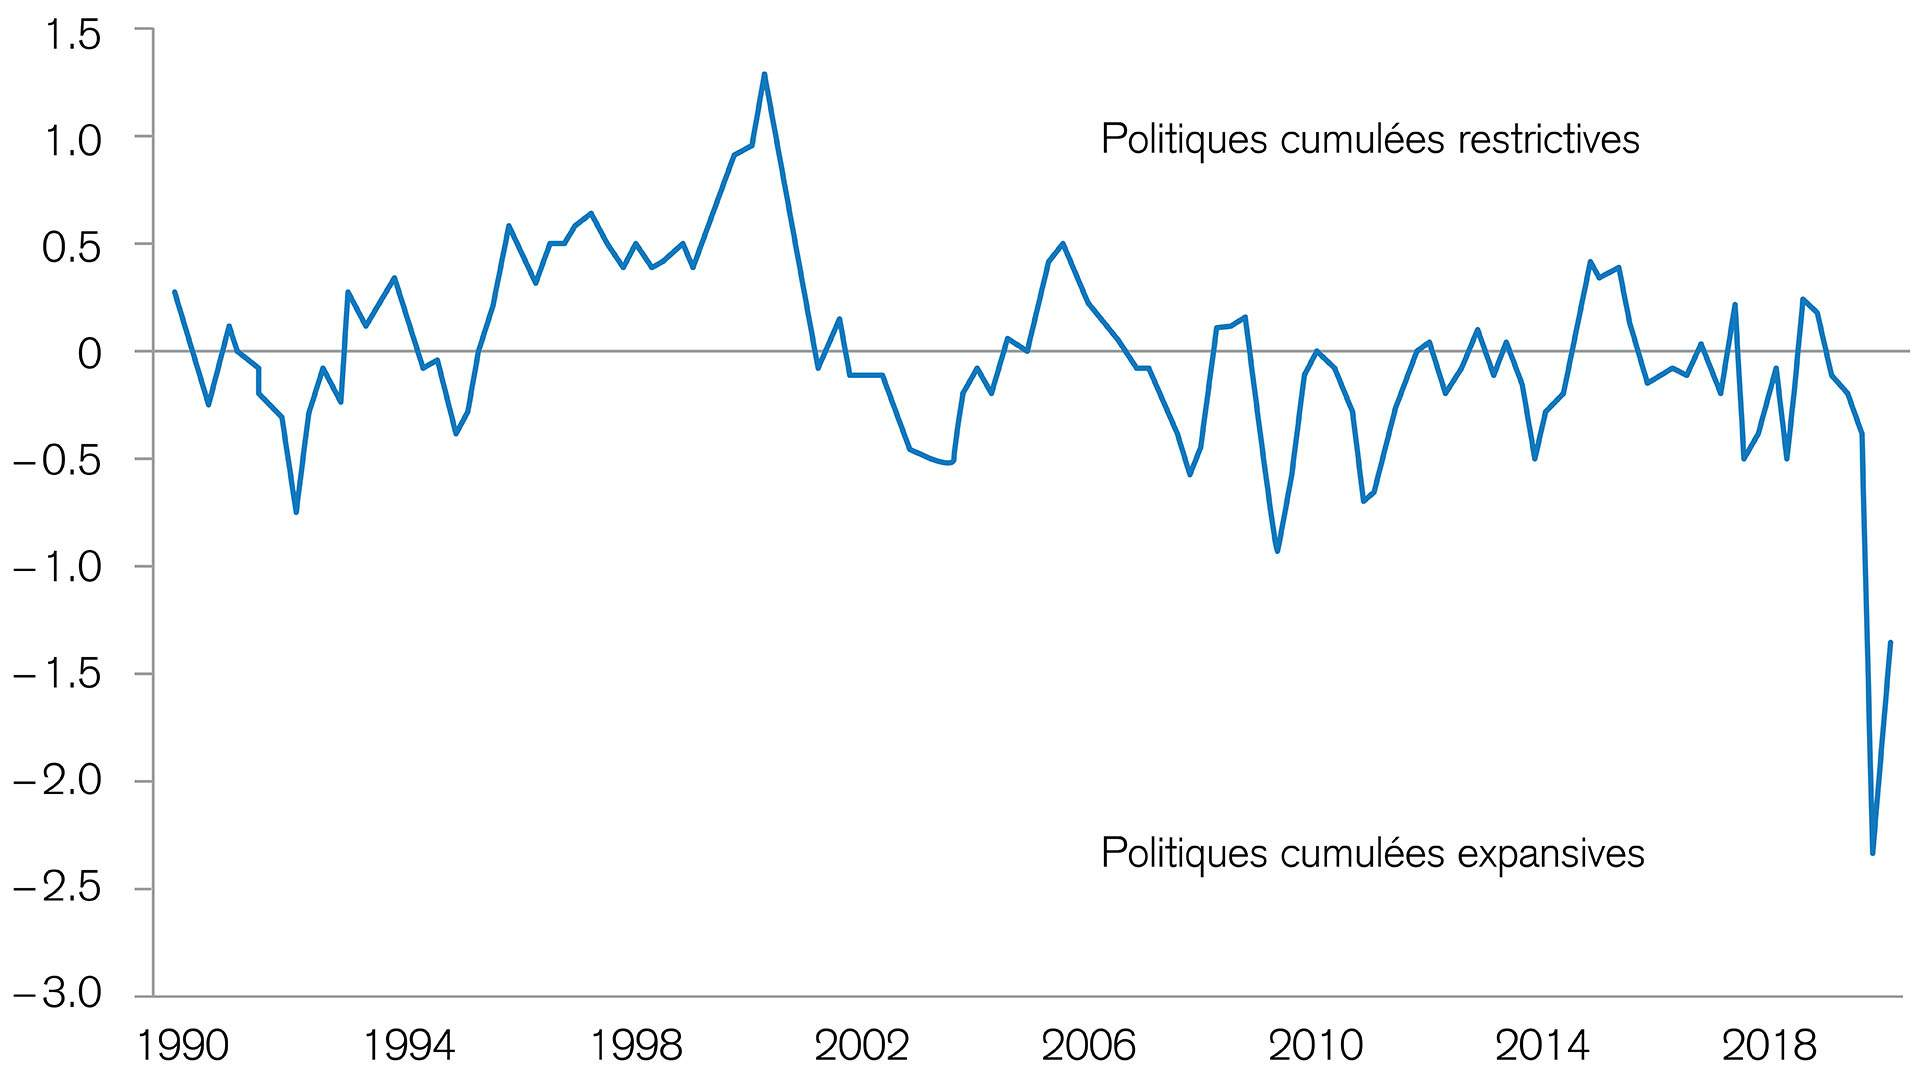 les stimuli influencent l'evolution des marches boursiers